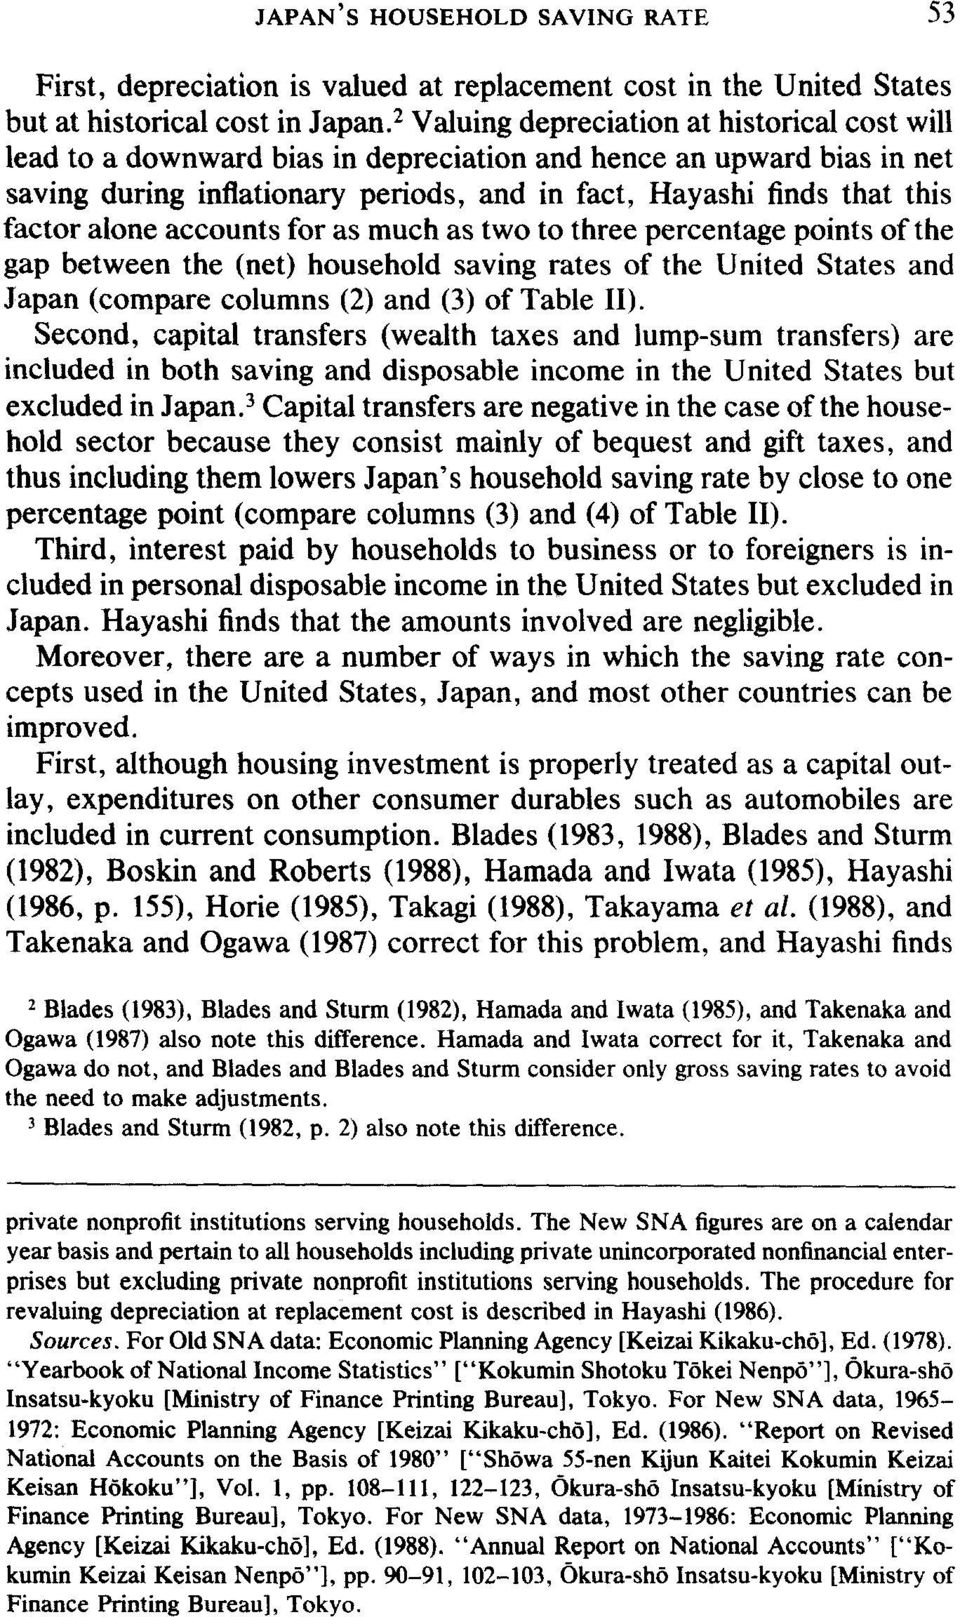 points of the gap between the (net) household saving rates of the United States and Japan (compare columns (2) and (3) of Table II).